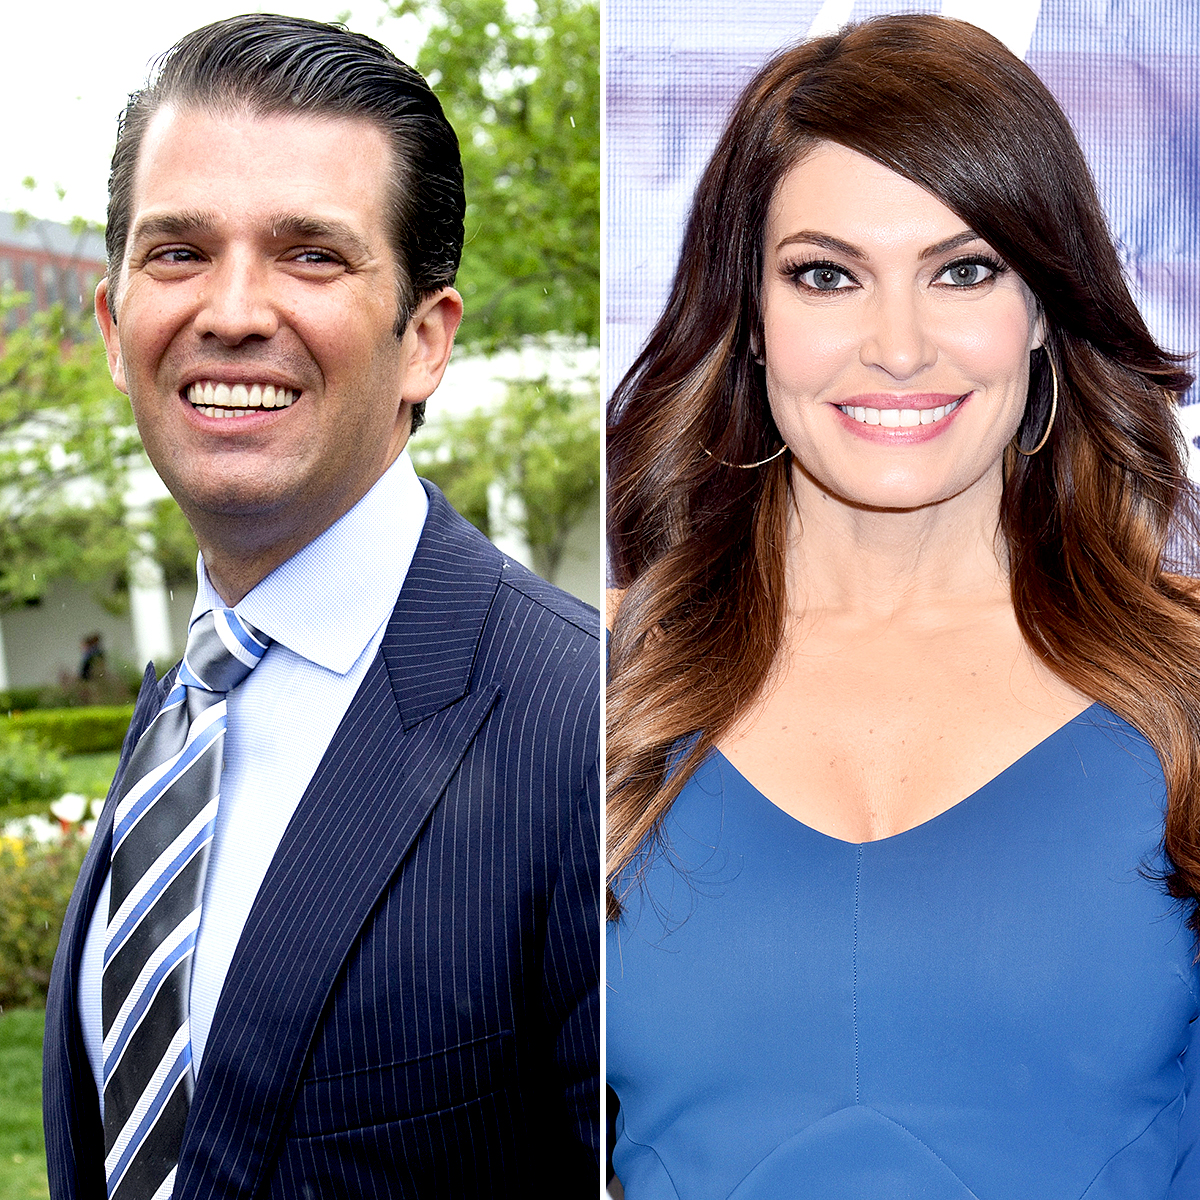 Who is donald trump jr dating